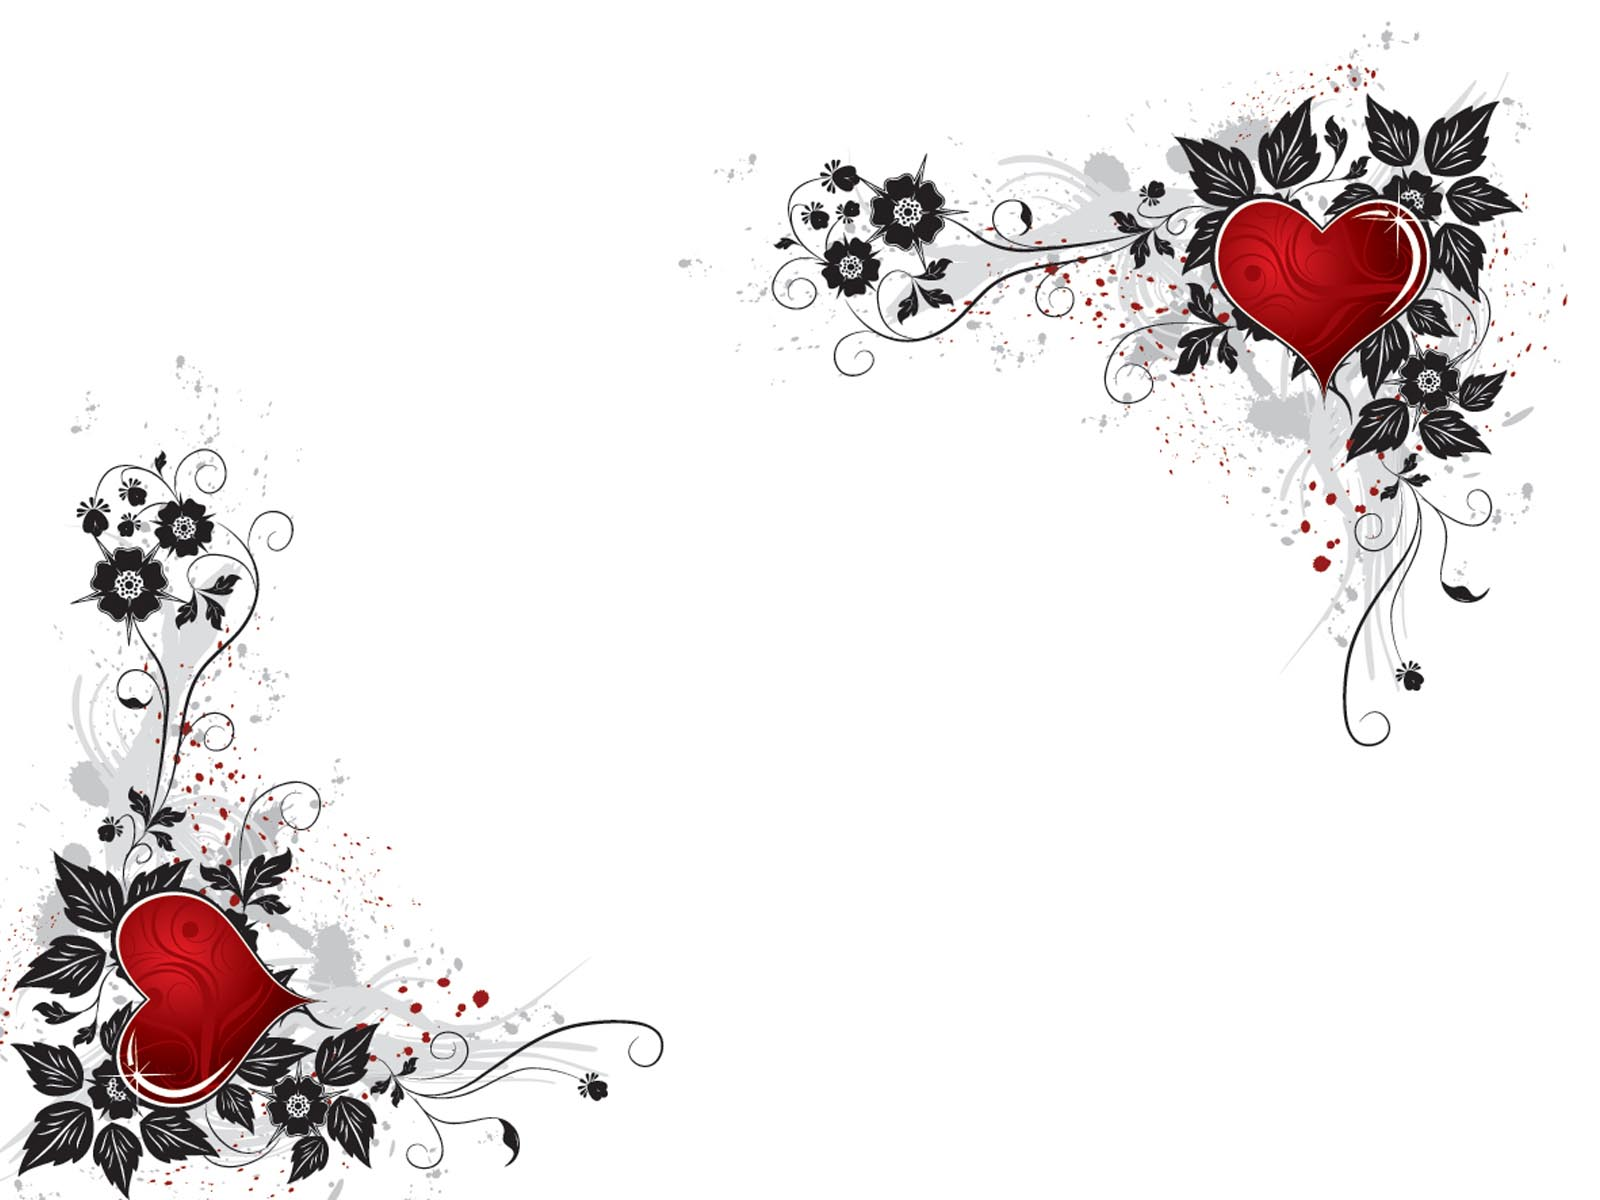 Red Heart Backgrounds